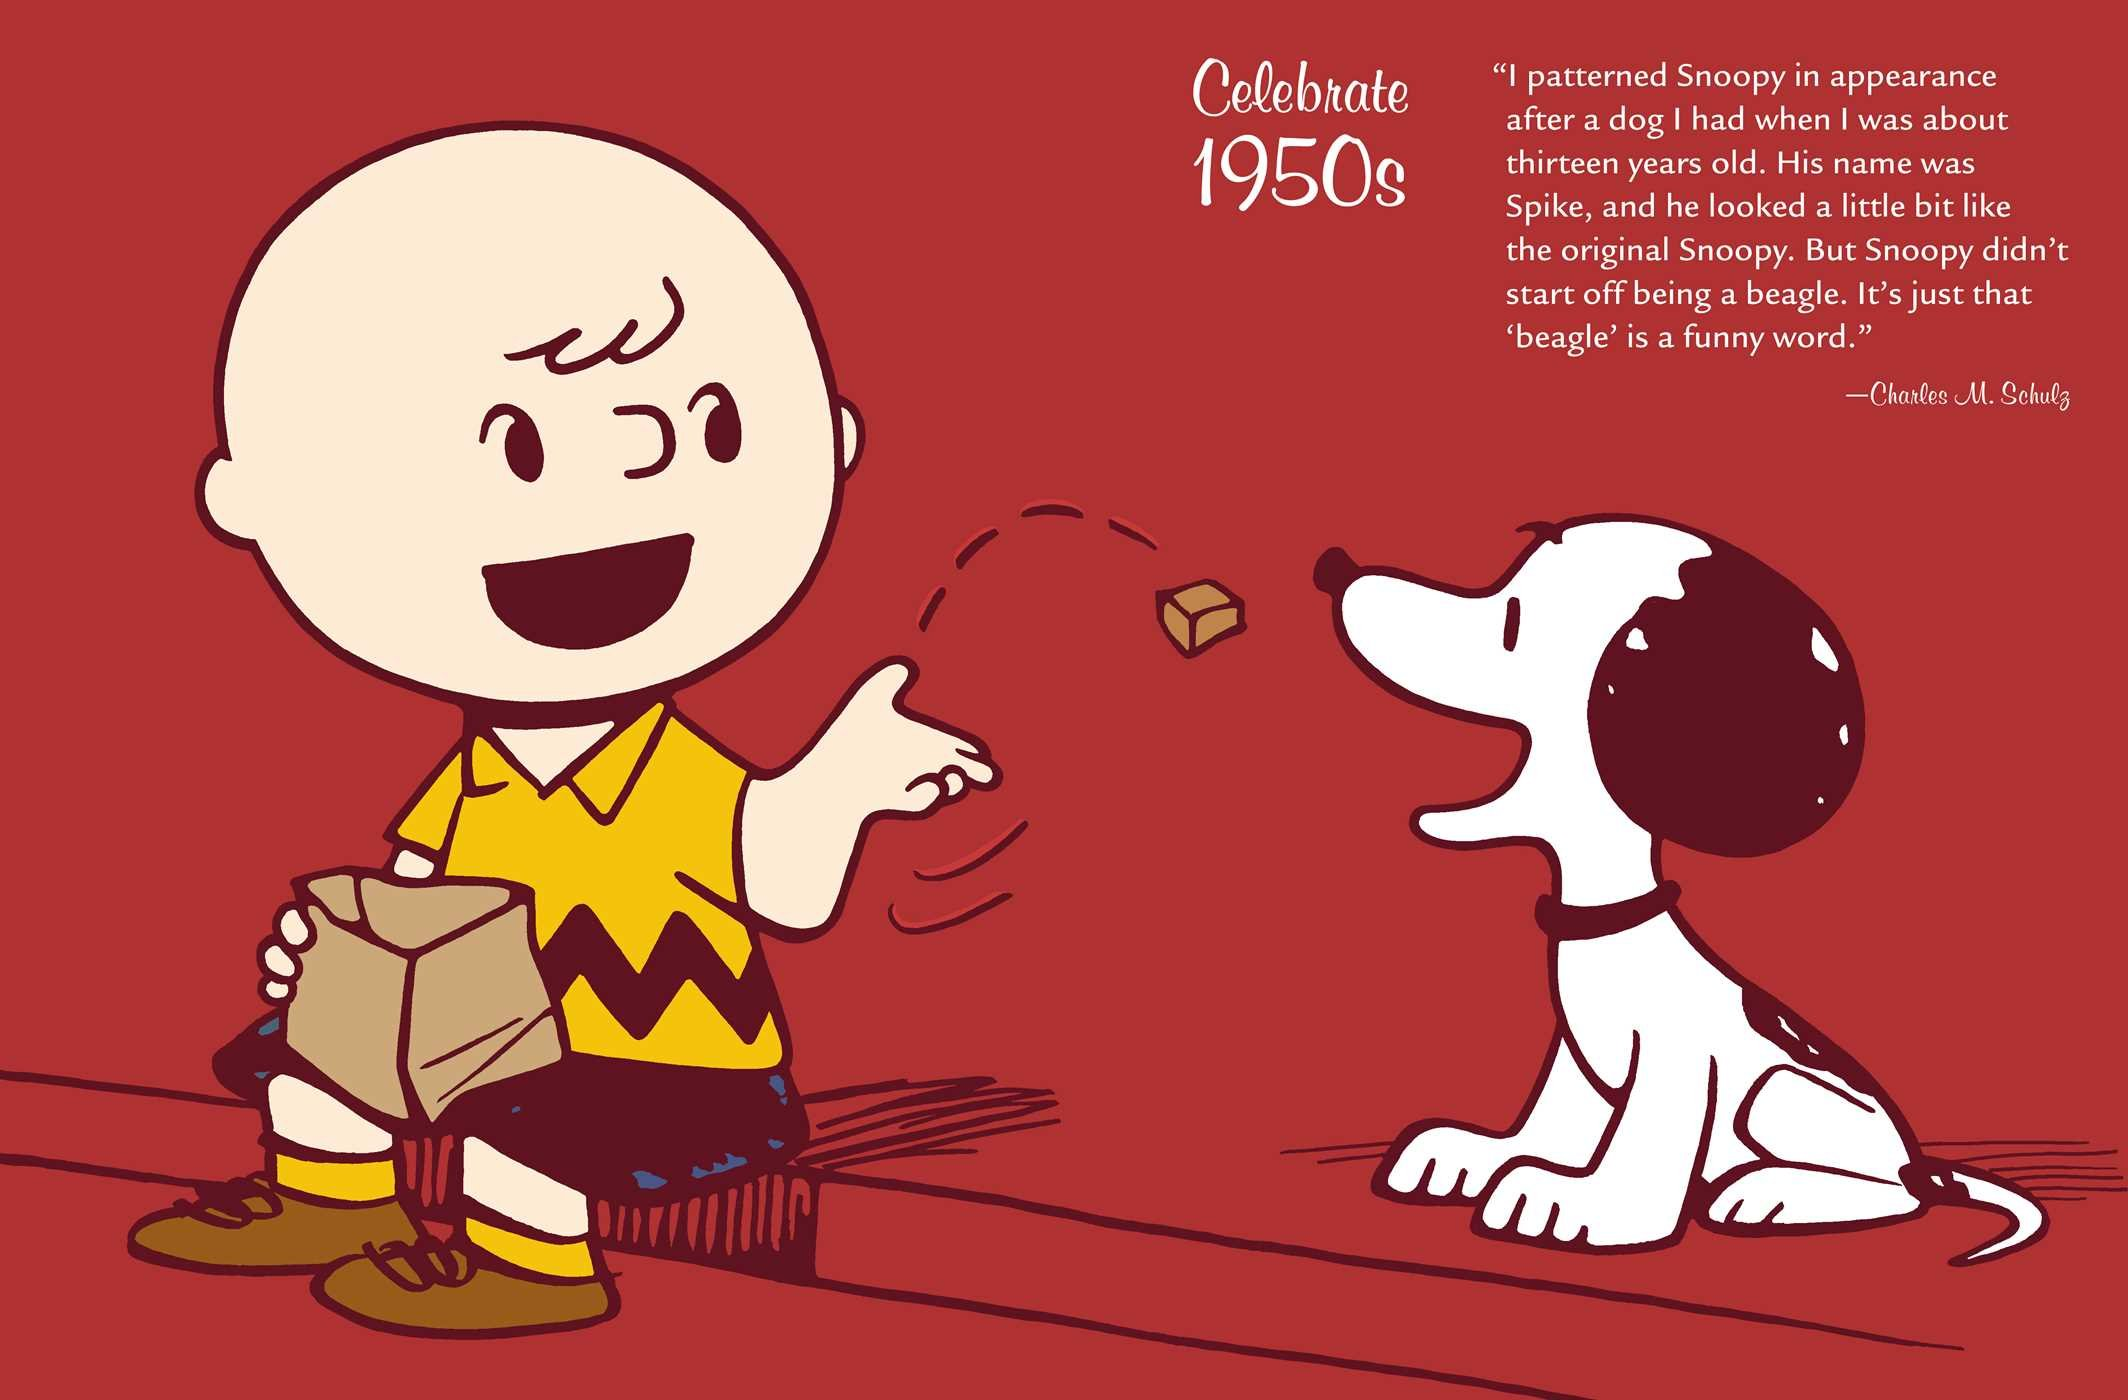 amazon celebrating snoopy charles m schulz comics graphic